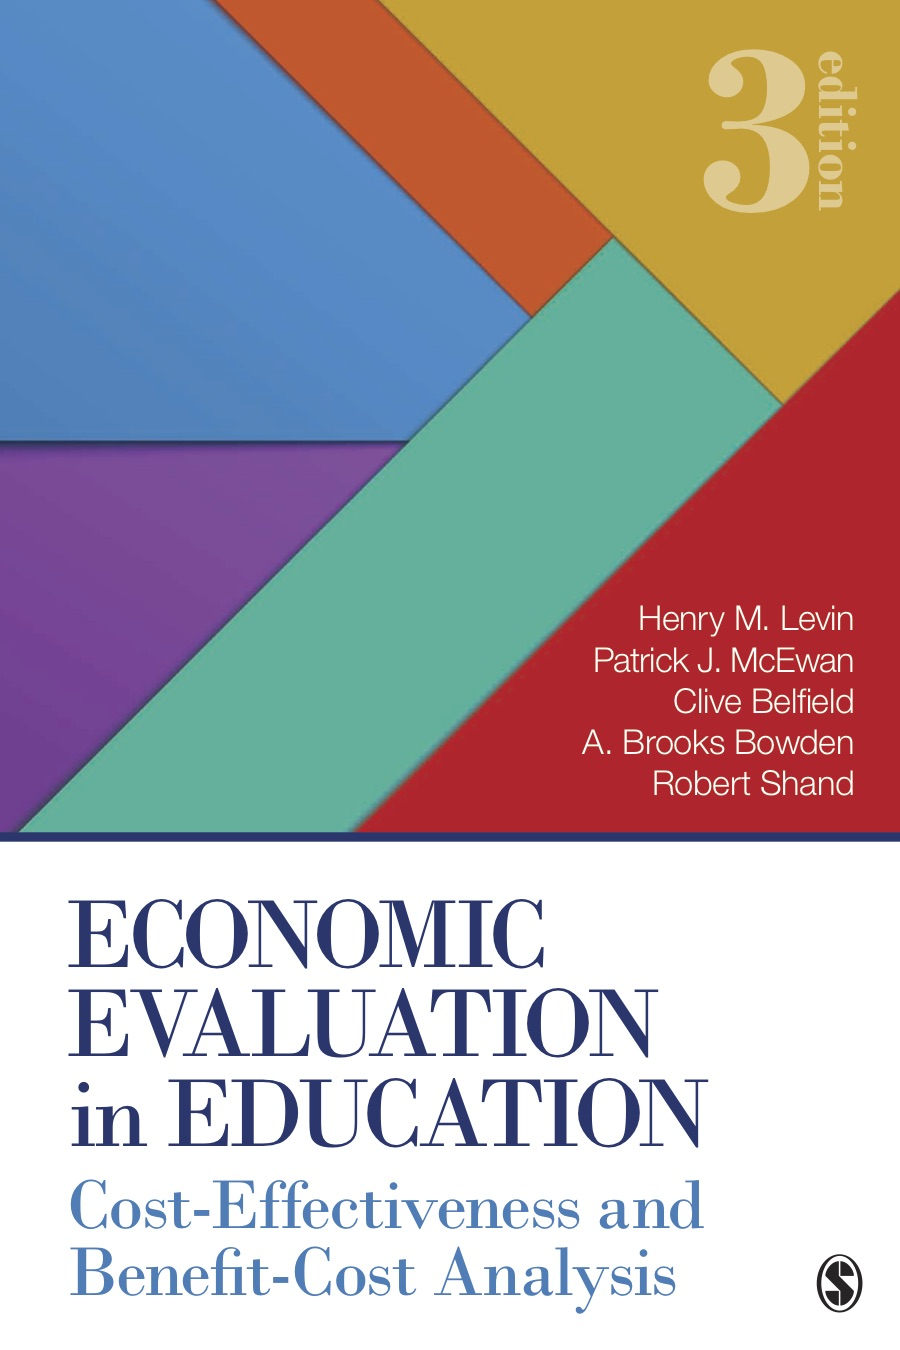 FINAL.COVERLevin_Economic Evaluation in Education 3ed_Comps_PASS3-1 copy.jpg